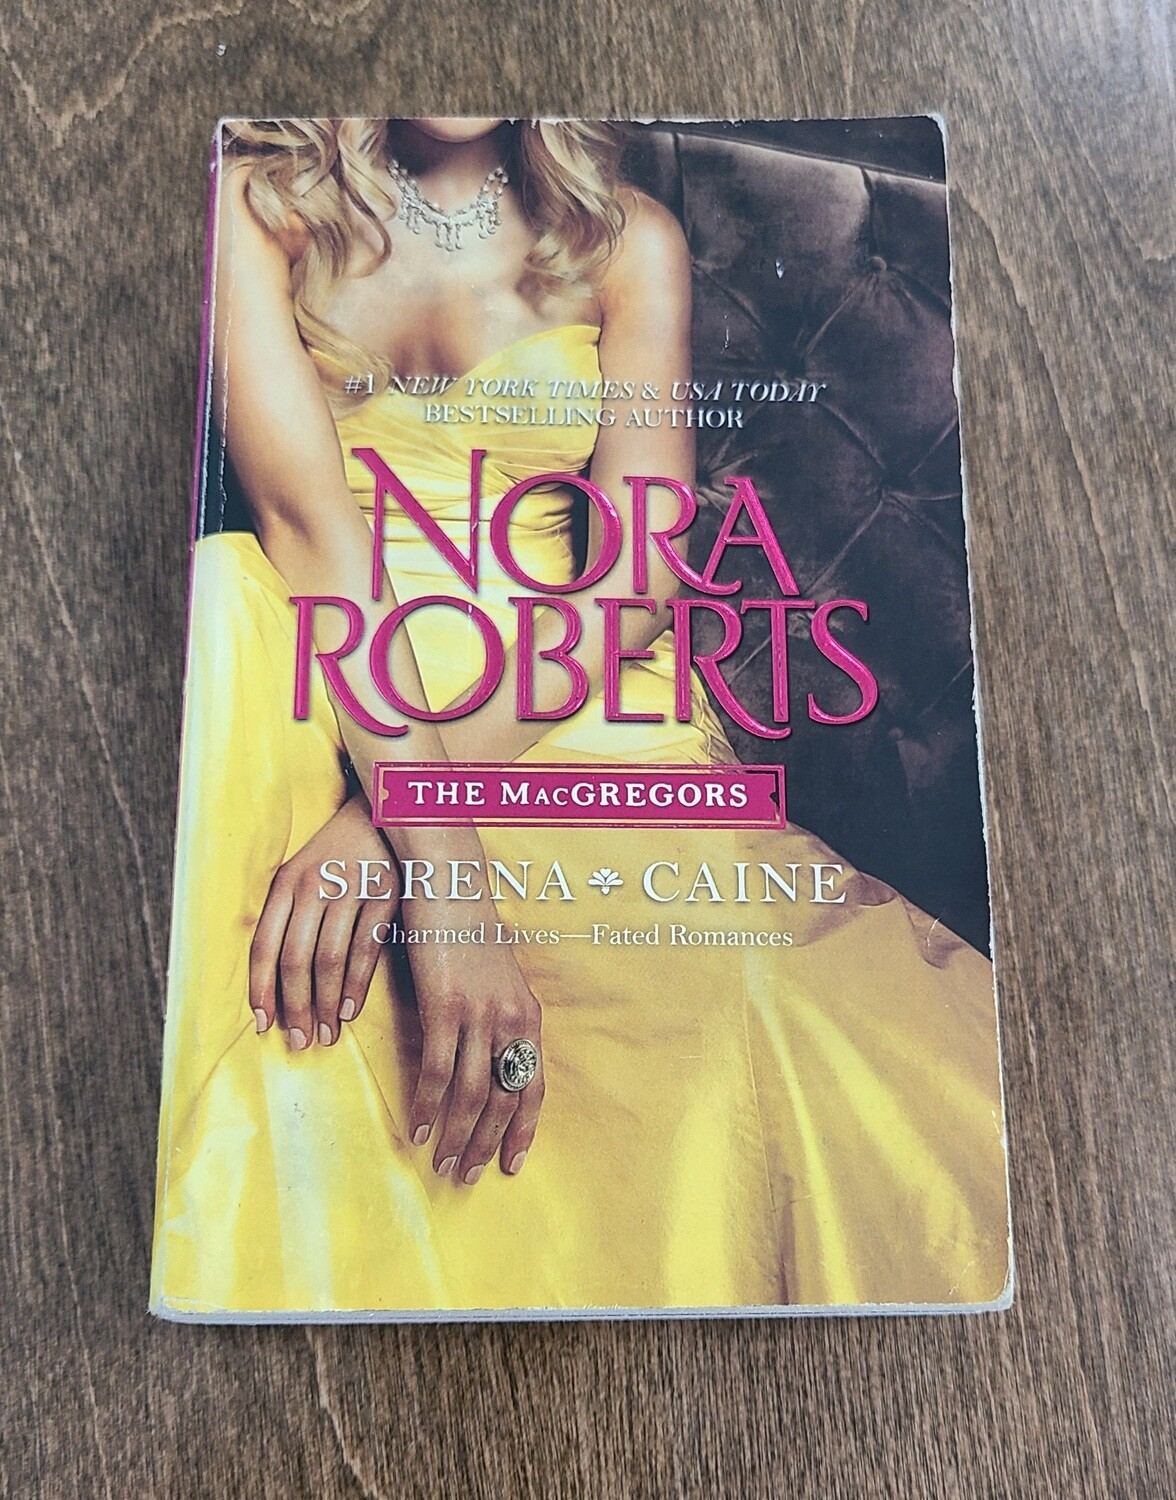 The MacGregors: Serena - Caine by Nora Roberts